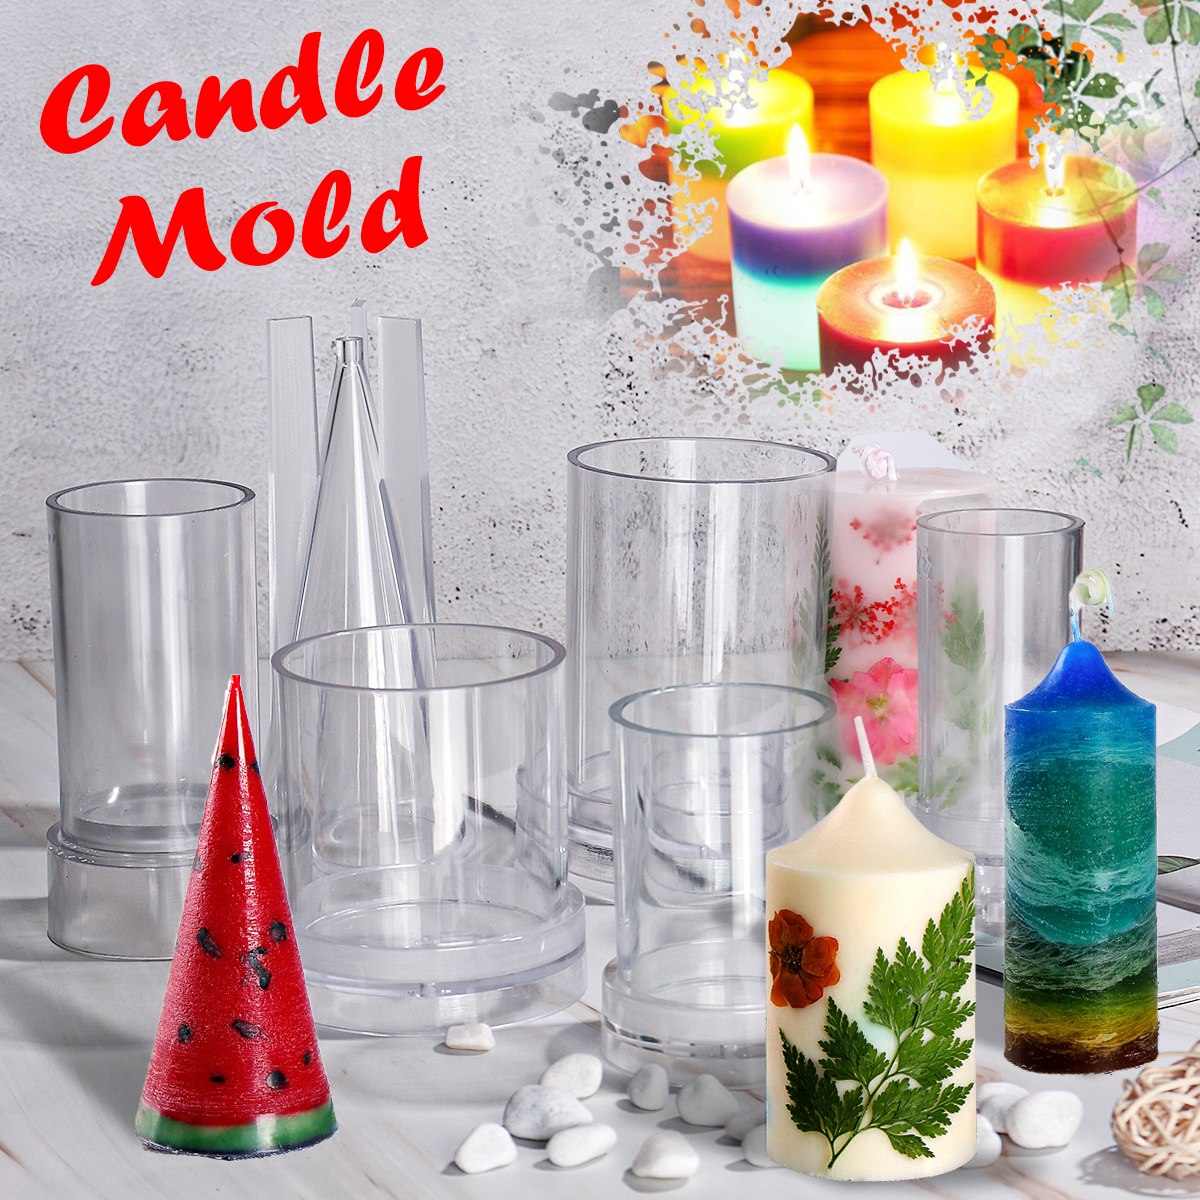 US DIY Candle Molds Candle Making Mould Handmade Soap Molds Clay Craft Tools